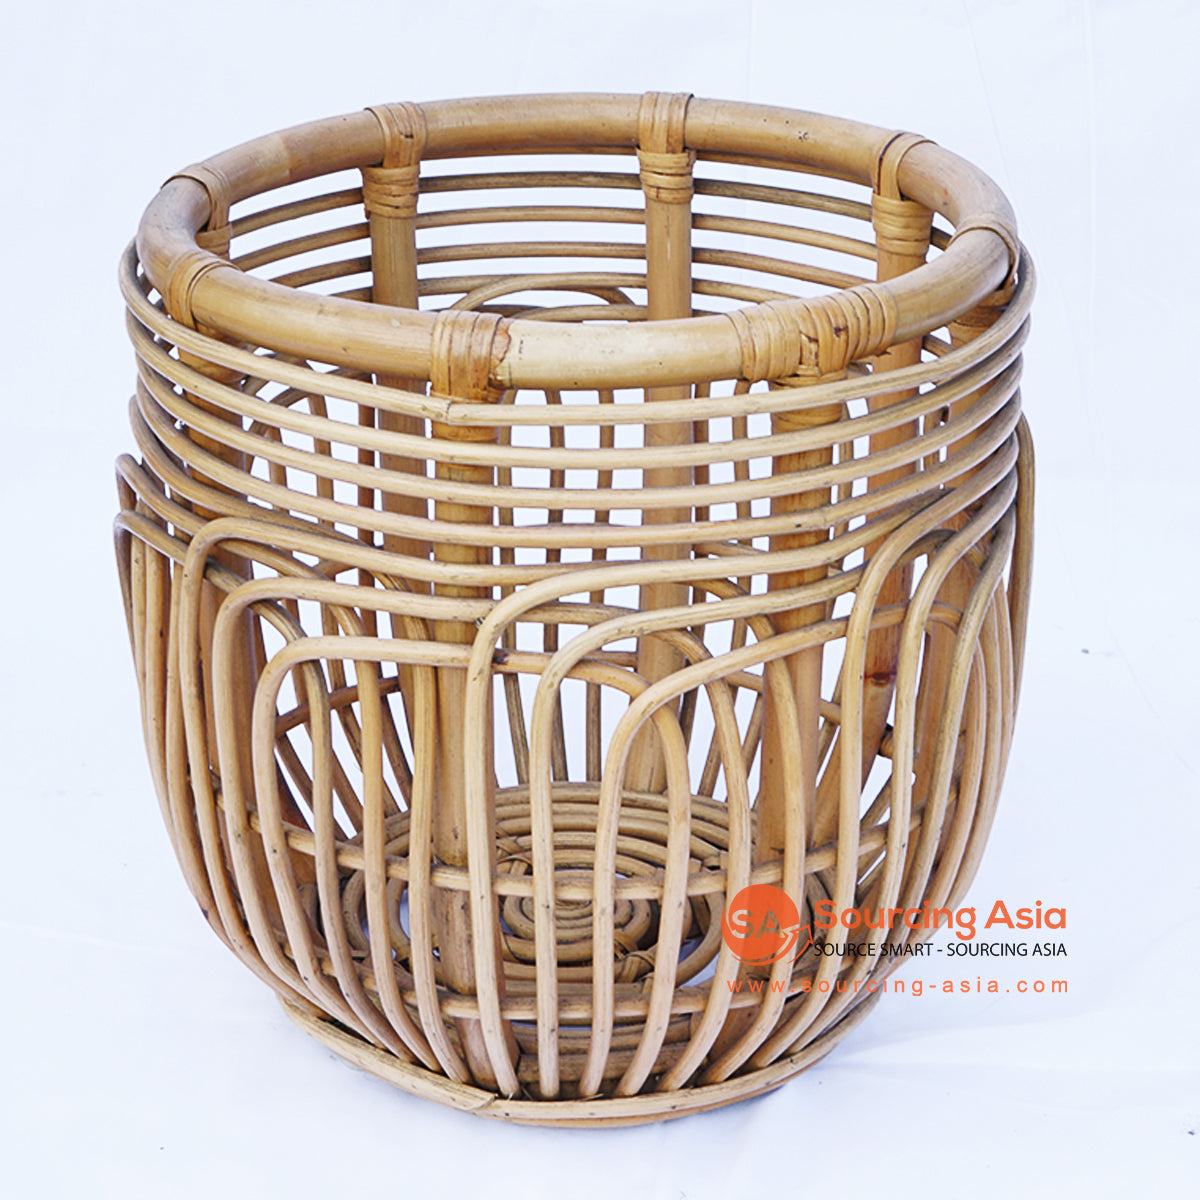 BNTC007 RATTAN DECORATIVE GAPED BASKET